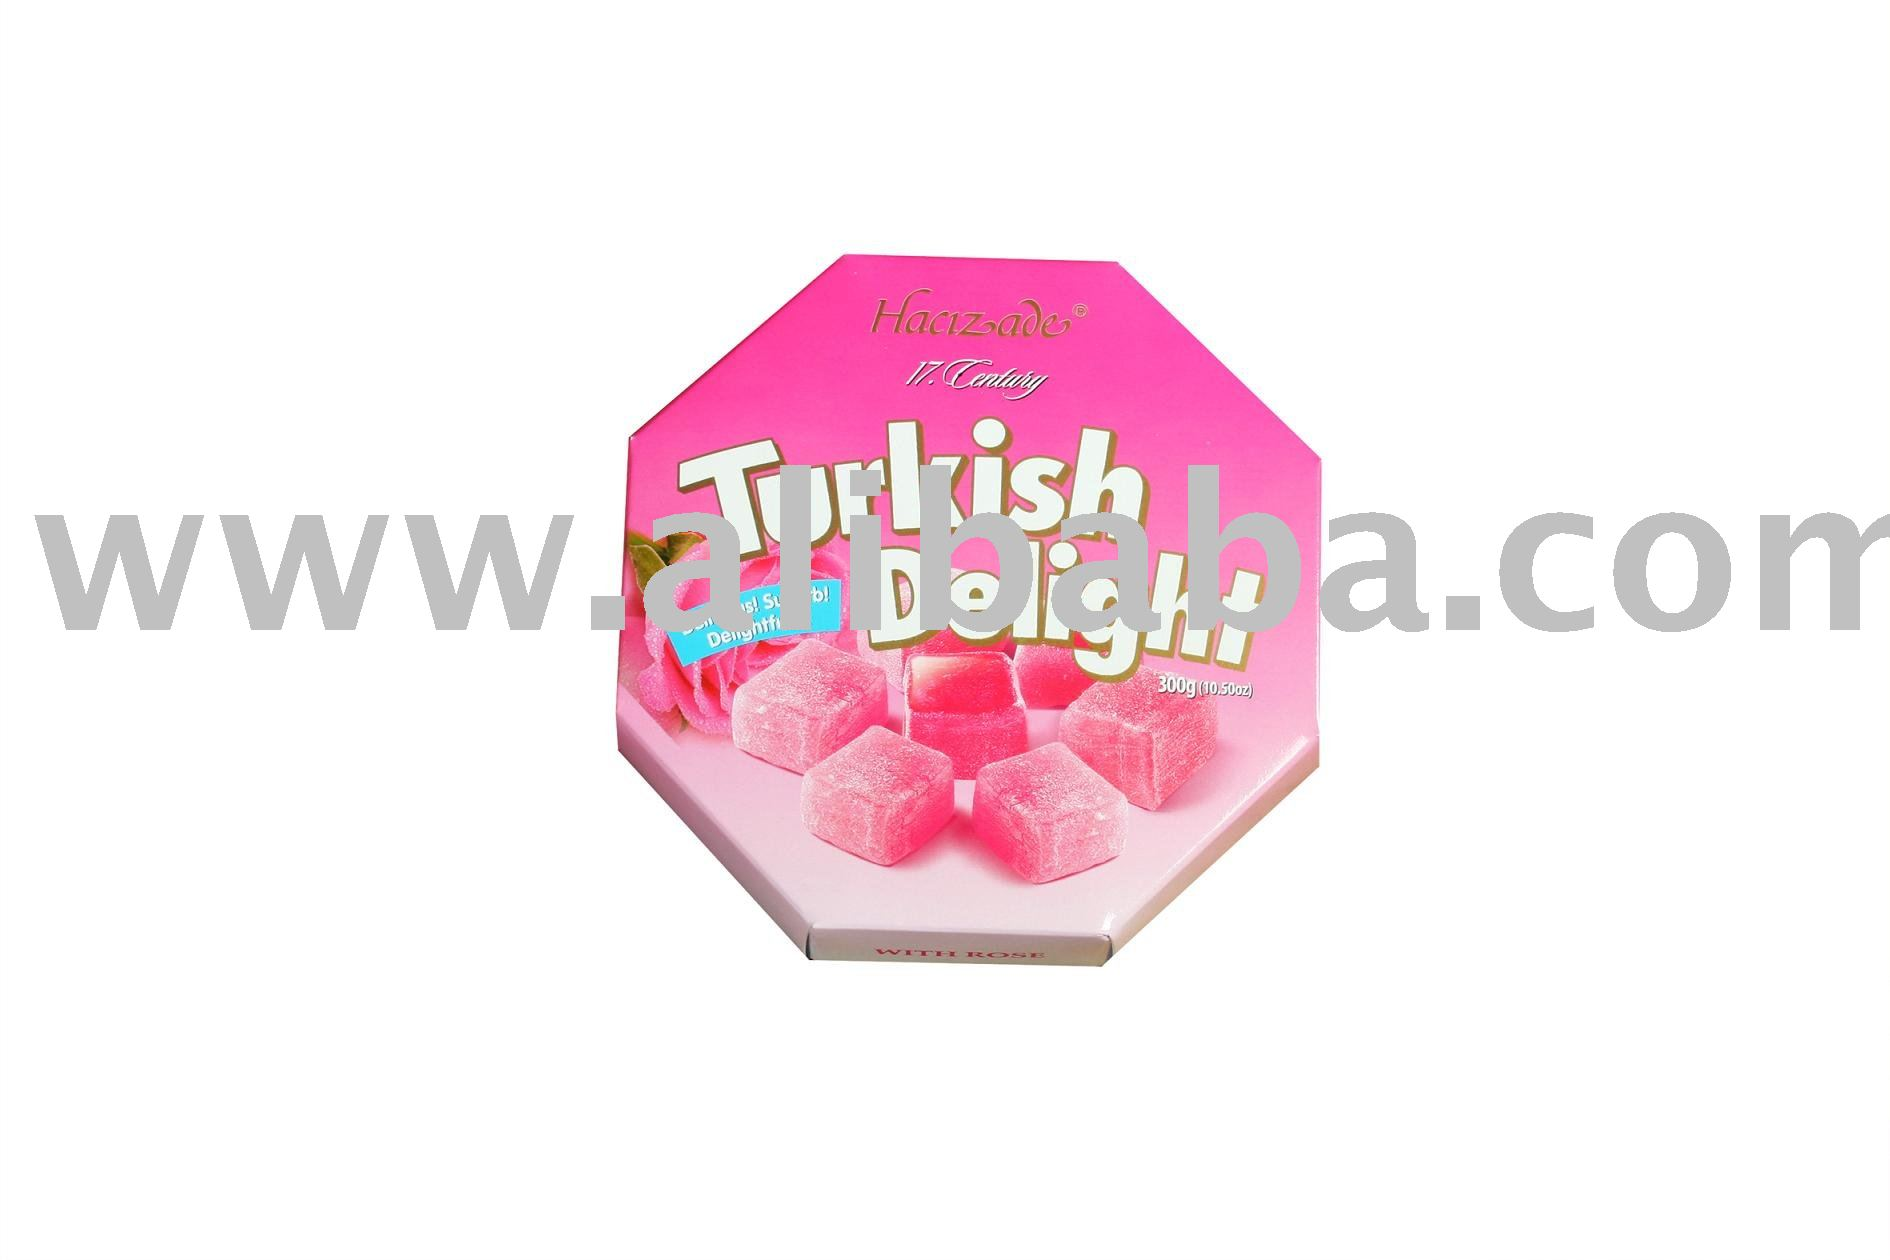 TURKISH DELIGHT WITH ROSE candy